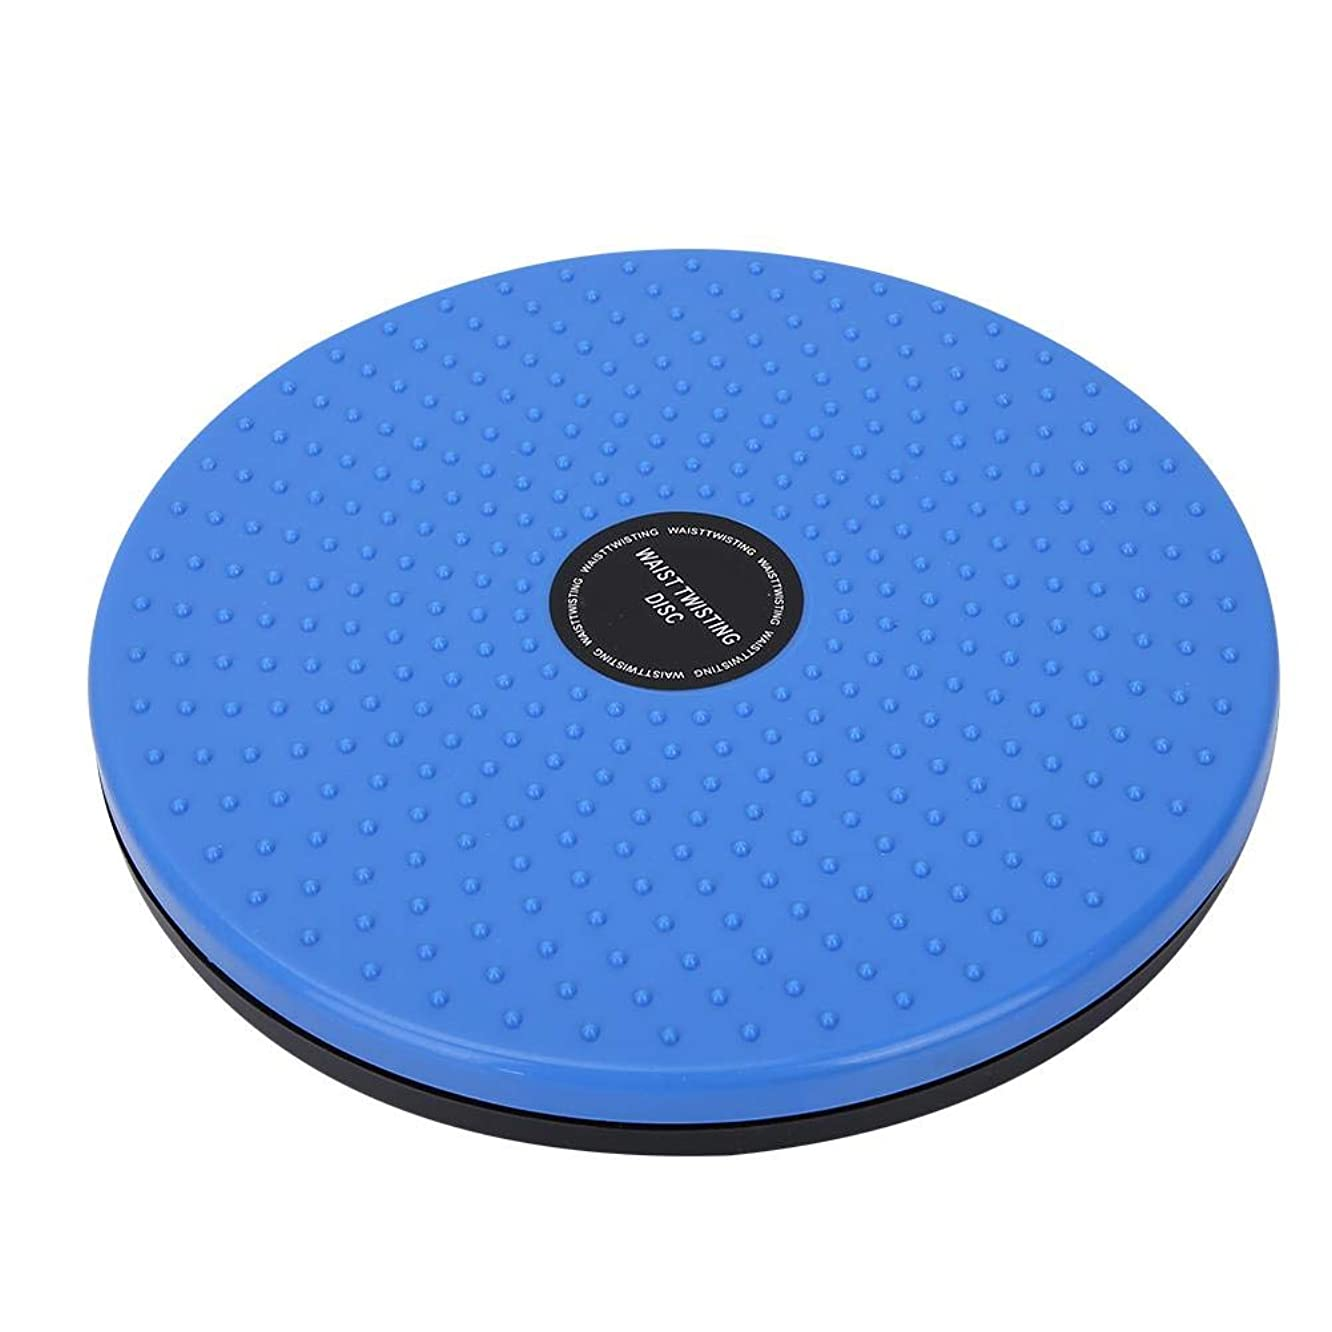 Jacksking Twisting Machine, Body Shaping Twisting Waist Machine Rotating Board Female Twister Sports Equipment (Blue)